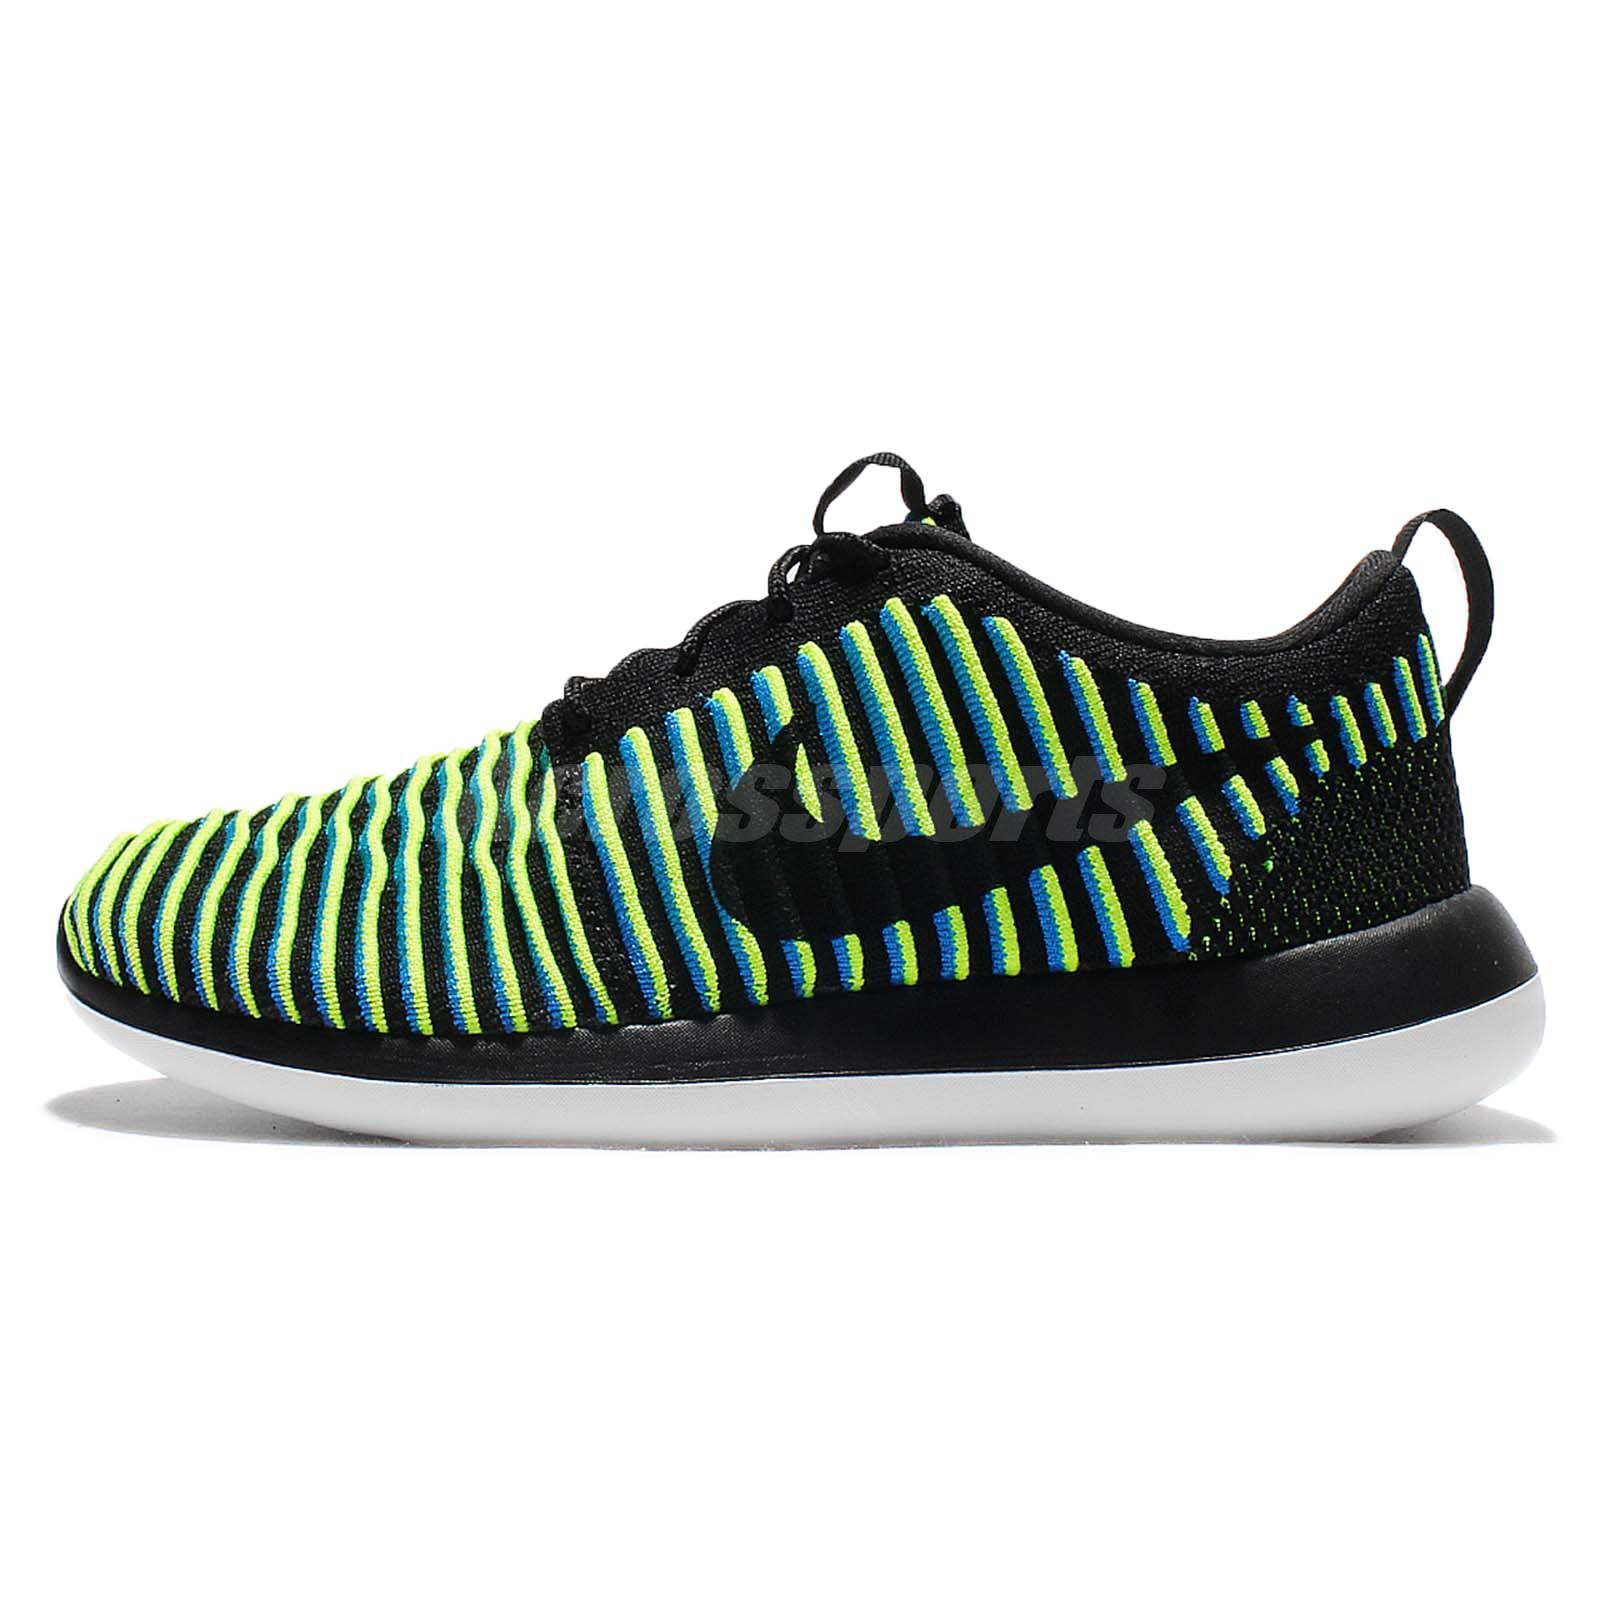 super popular dc2f2 c8ce2 ... shopping wmns nike roshe two flyknit 2 rosherun black volt women  running shoes 844929 003 4aa03